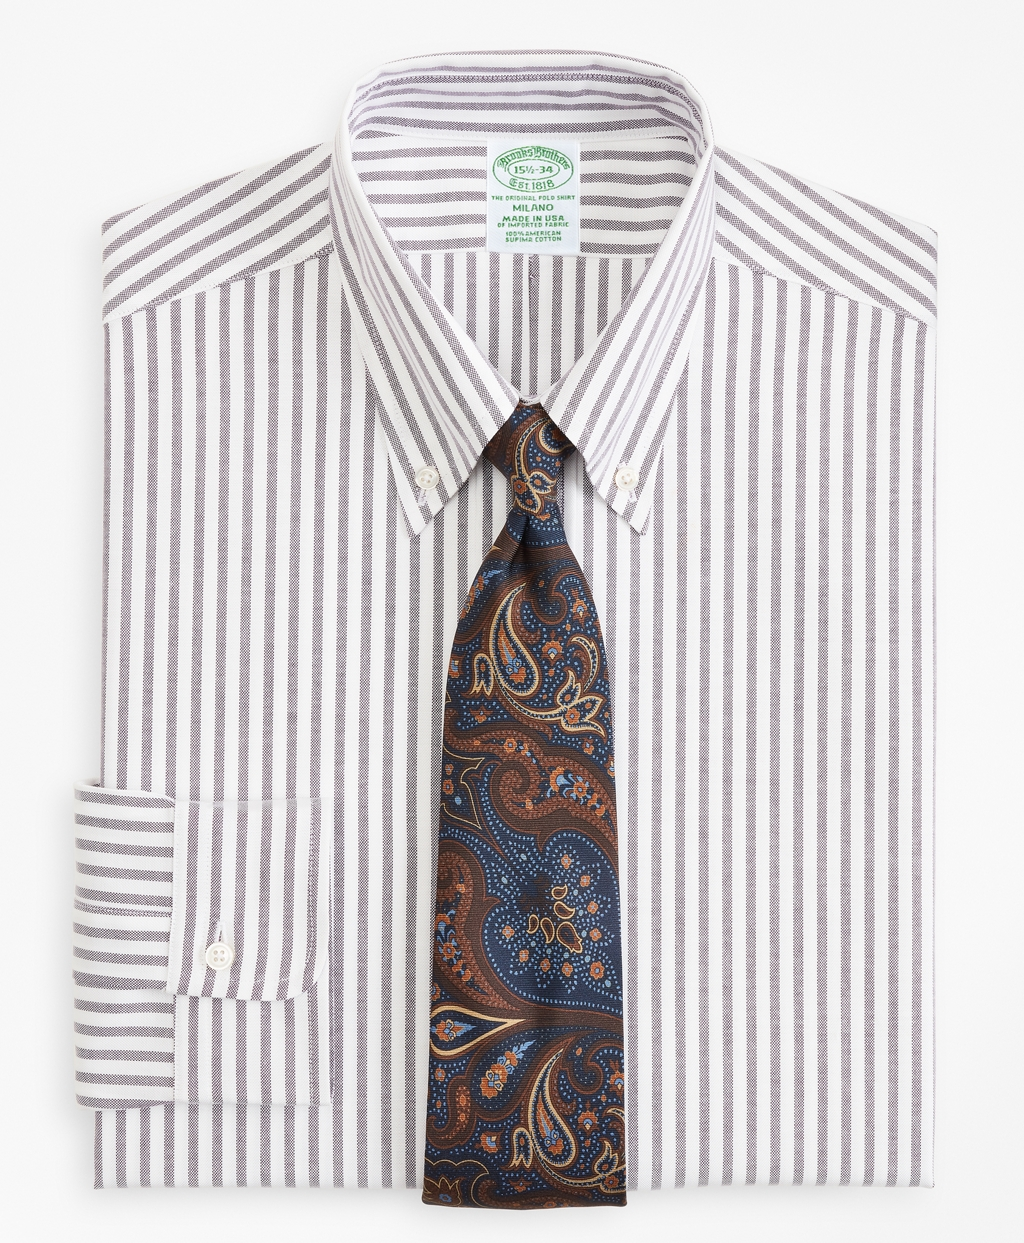 1920s Style Mens Shirts | Peaky Blinders Shirts and Collars Brooks Brothers Mens Original Polo Button-Down Oxford Extra Slim Slim-Fit Dress Shirt Stripe $140.00 AT vintagedancer.com